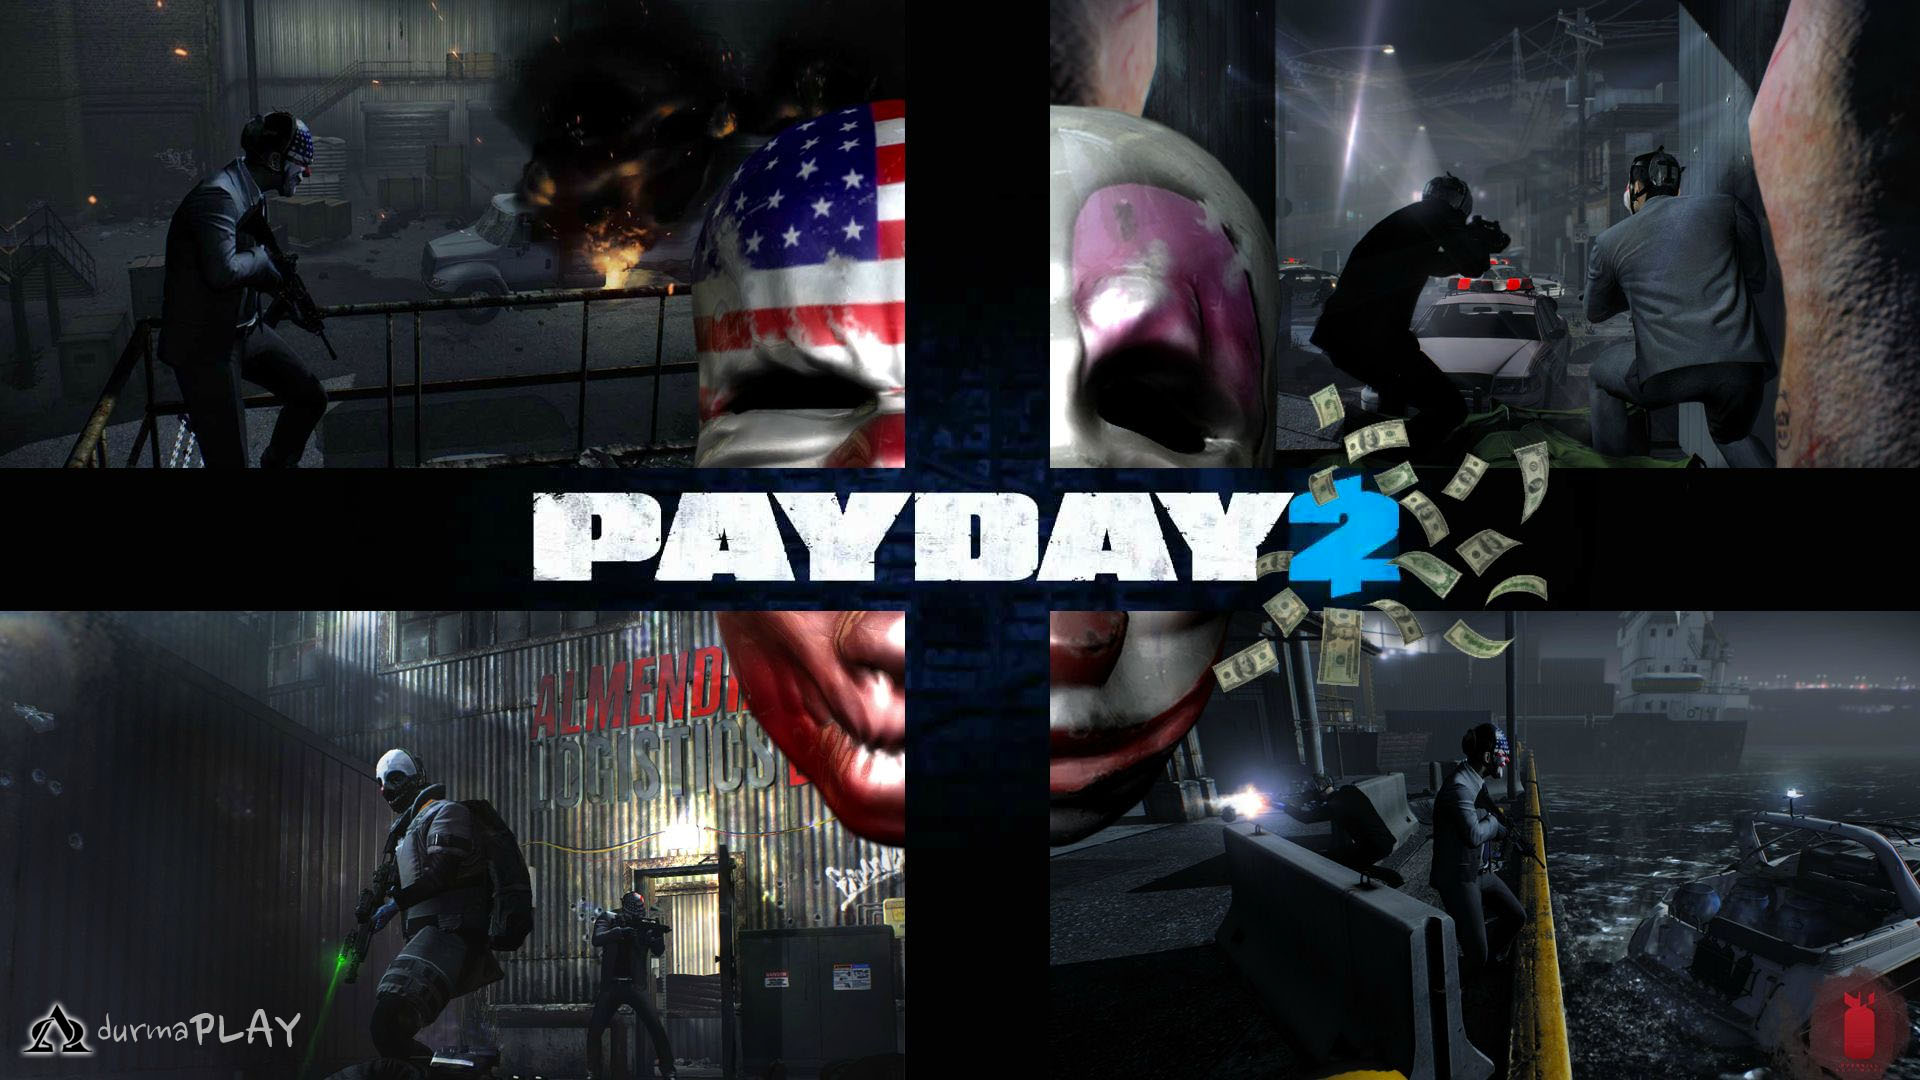 https-www-durmaplay-com-Product-payday-steam-cdkey-payday-steam-cd-key-durmaplay-oyun-wallpaper-wp3407123